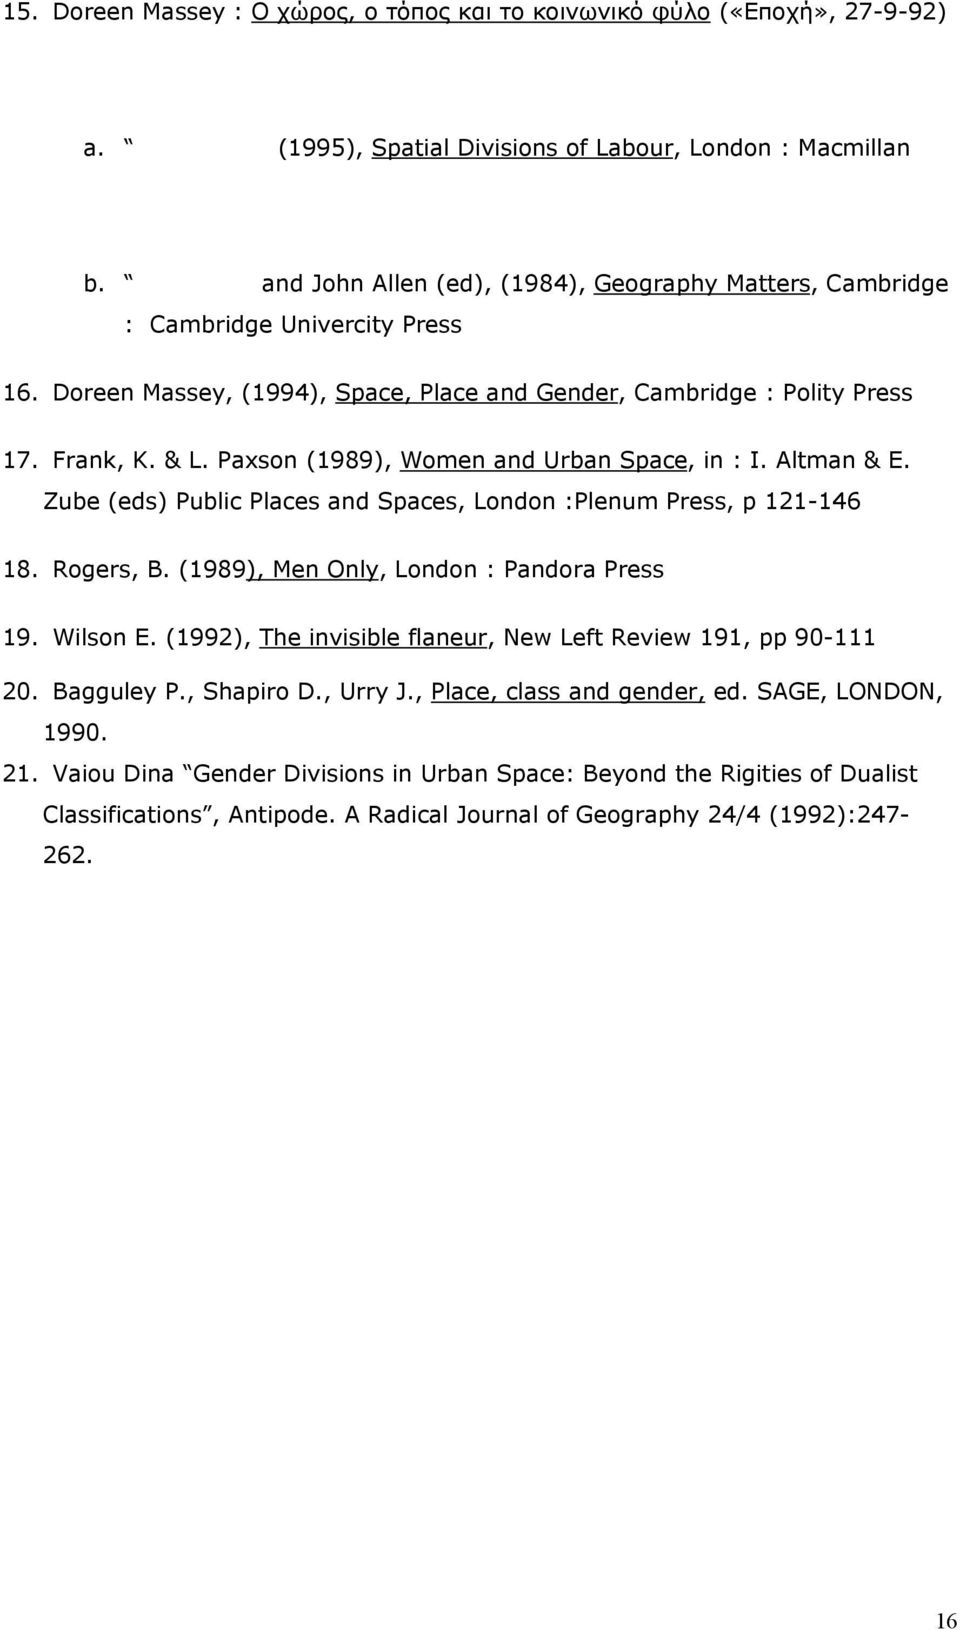 Paxson (1989), Women and Urban Space, in : I. Altman & E. Zube (eds) Public Places and Spaces, London :Plenum Press, p 121-146 18. Rogers, B. (1989), Men Only, London : Pandora Press 19. Wilson E.